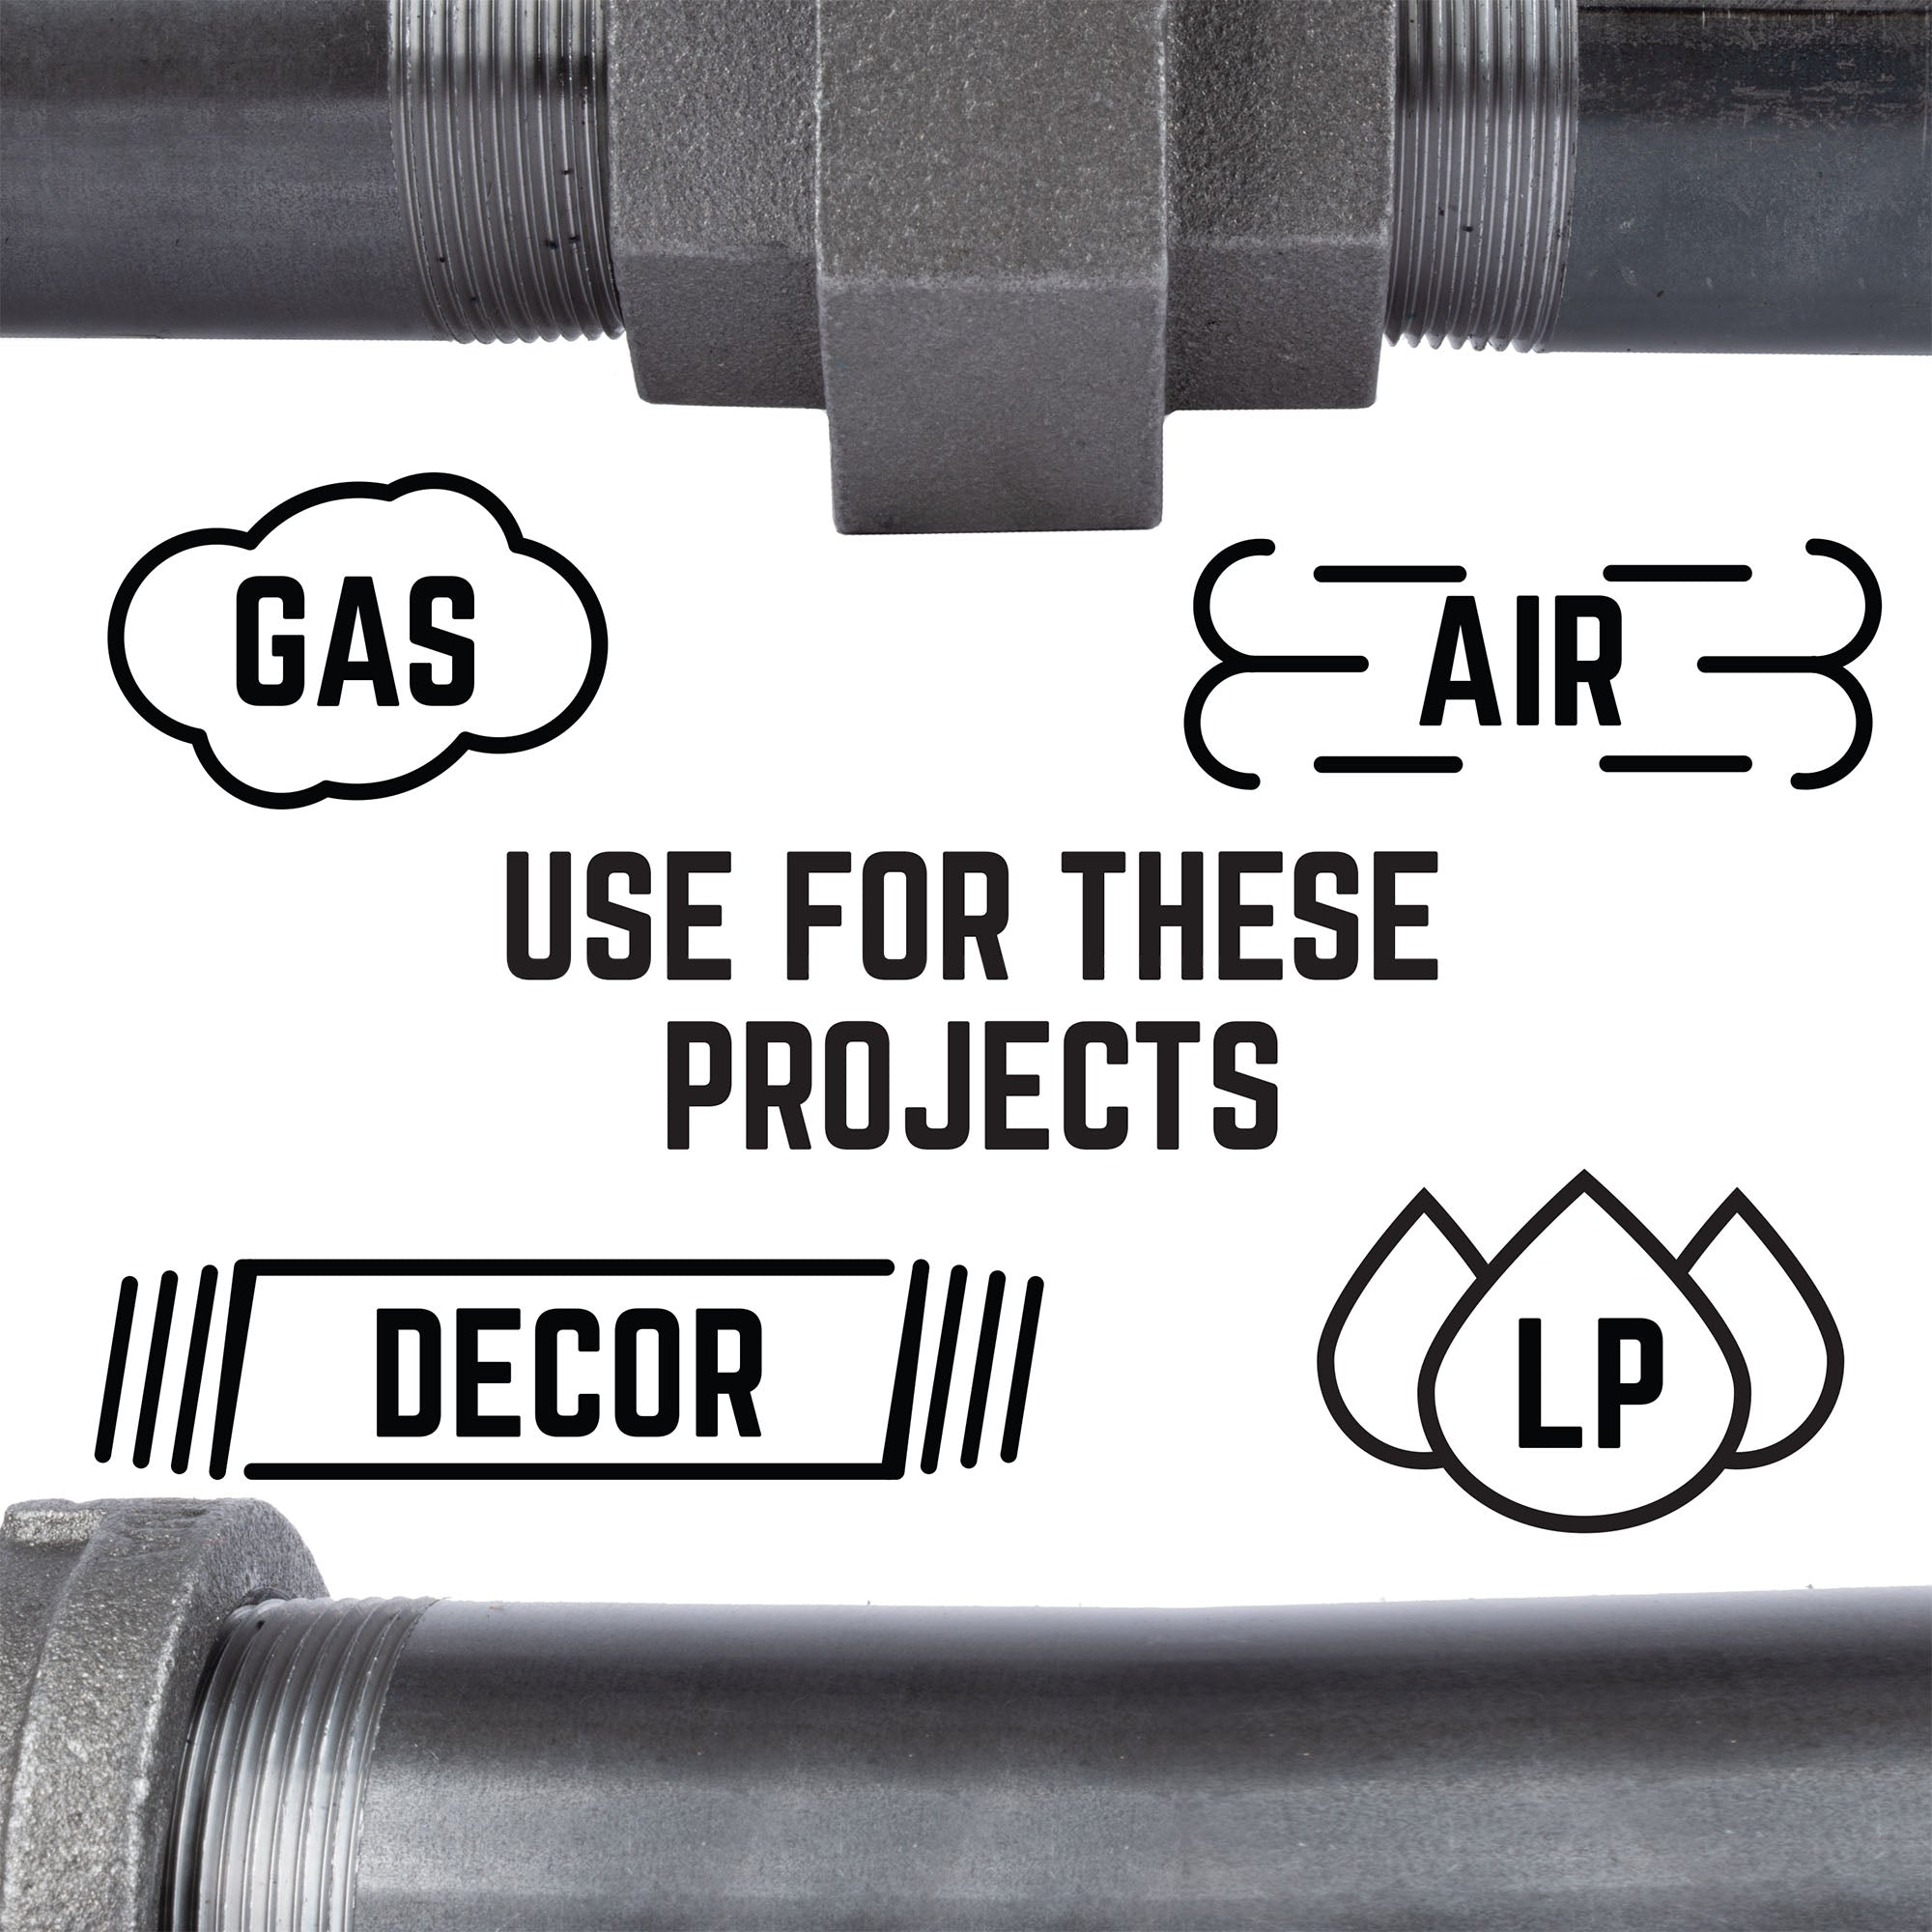 2 In Black Union - Pipe Decor